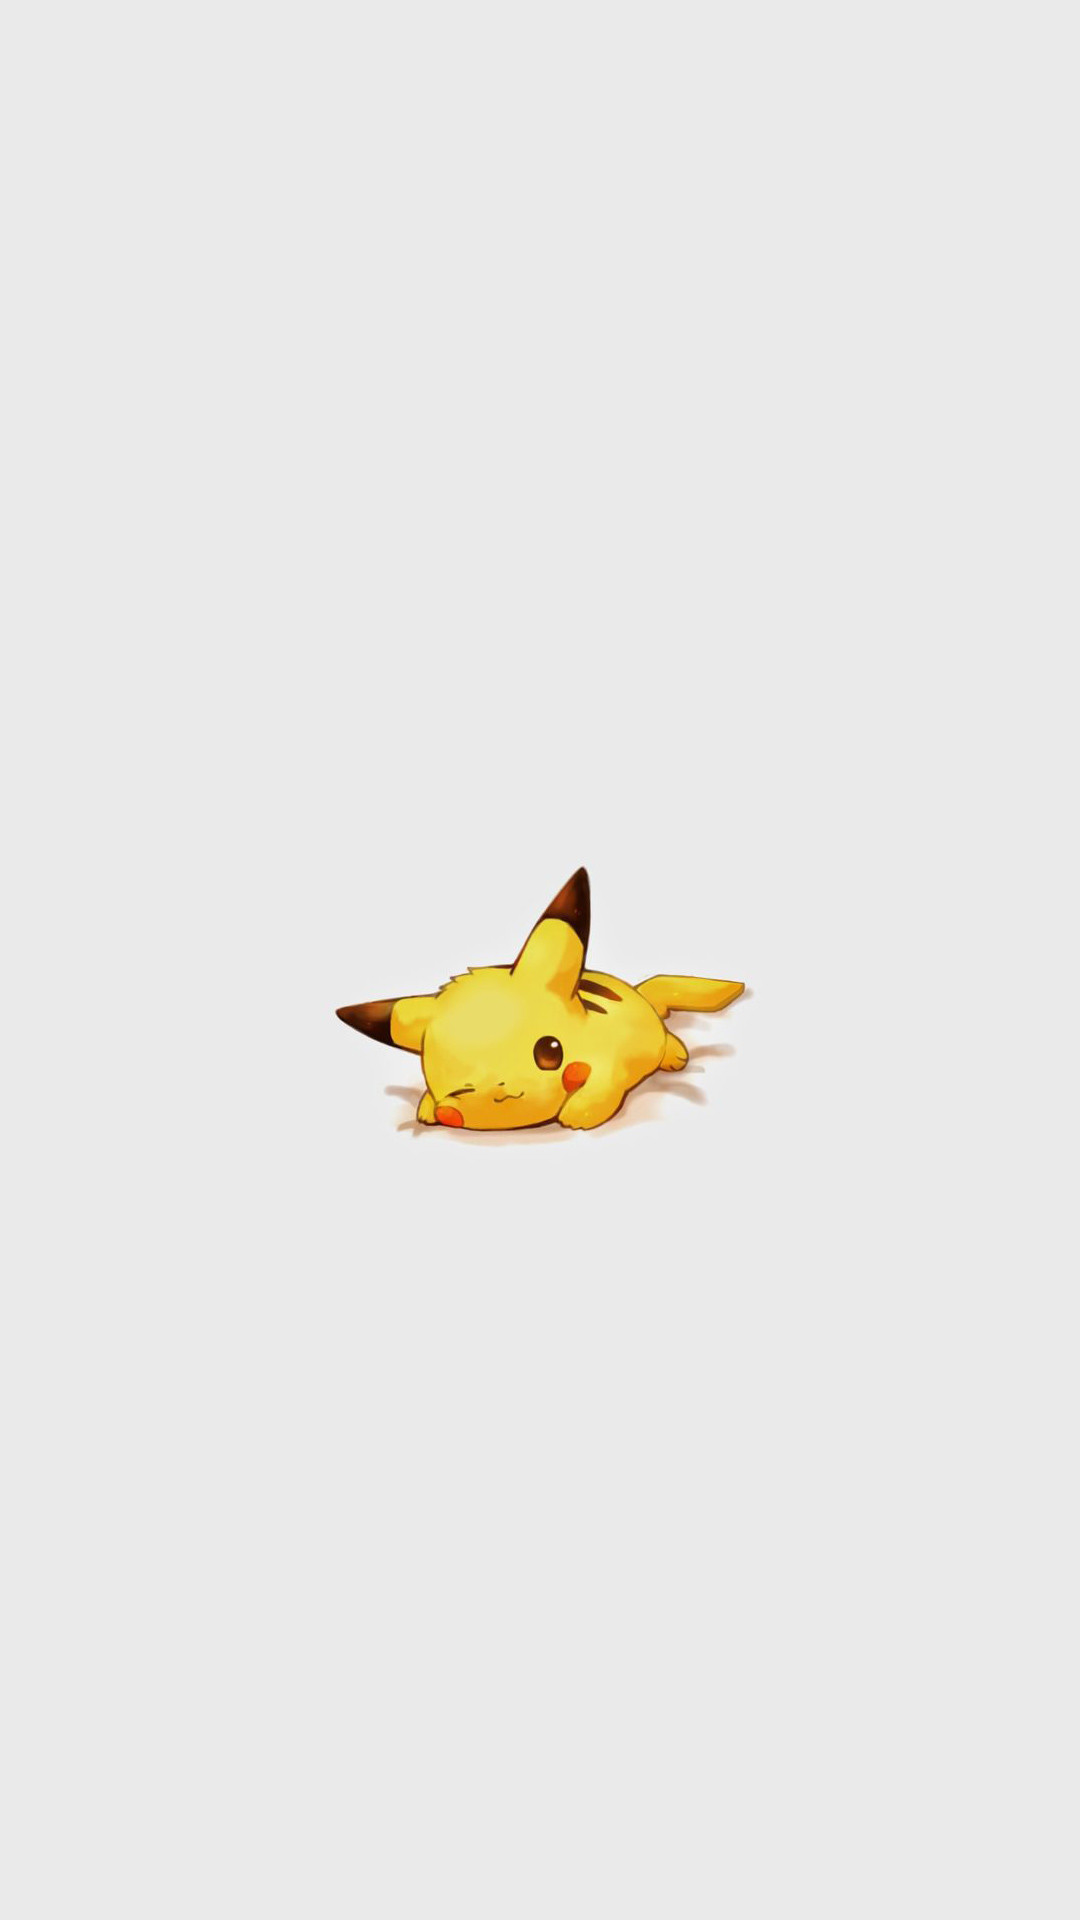 1080x1920 Cute Pikachu Pokemon Character iPhone 6+ HD Wallpaper -  http://freebestpicture.